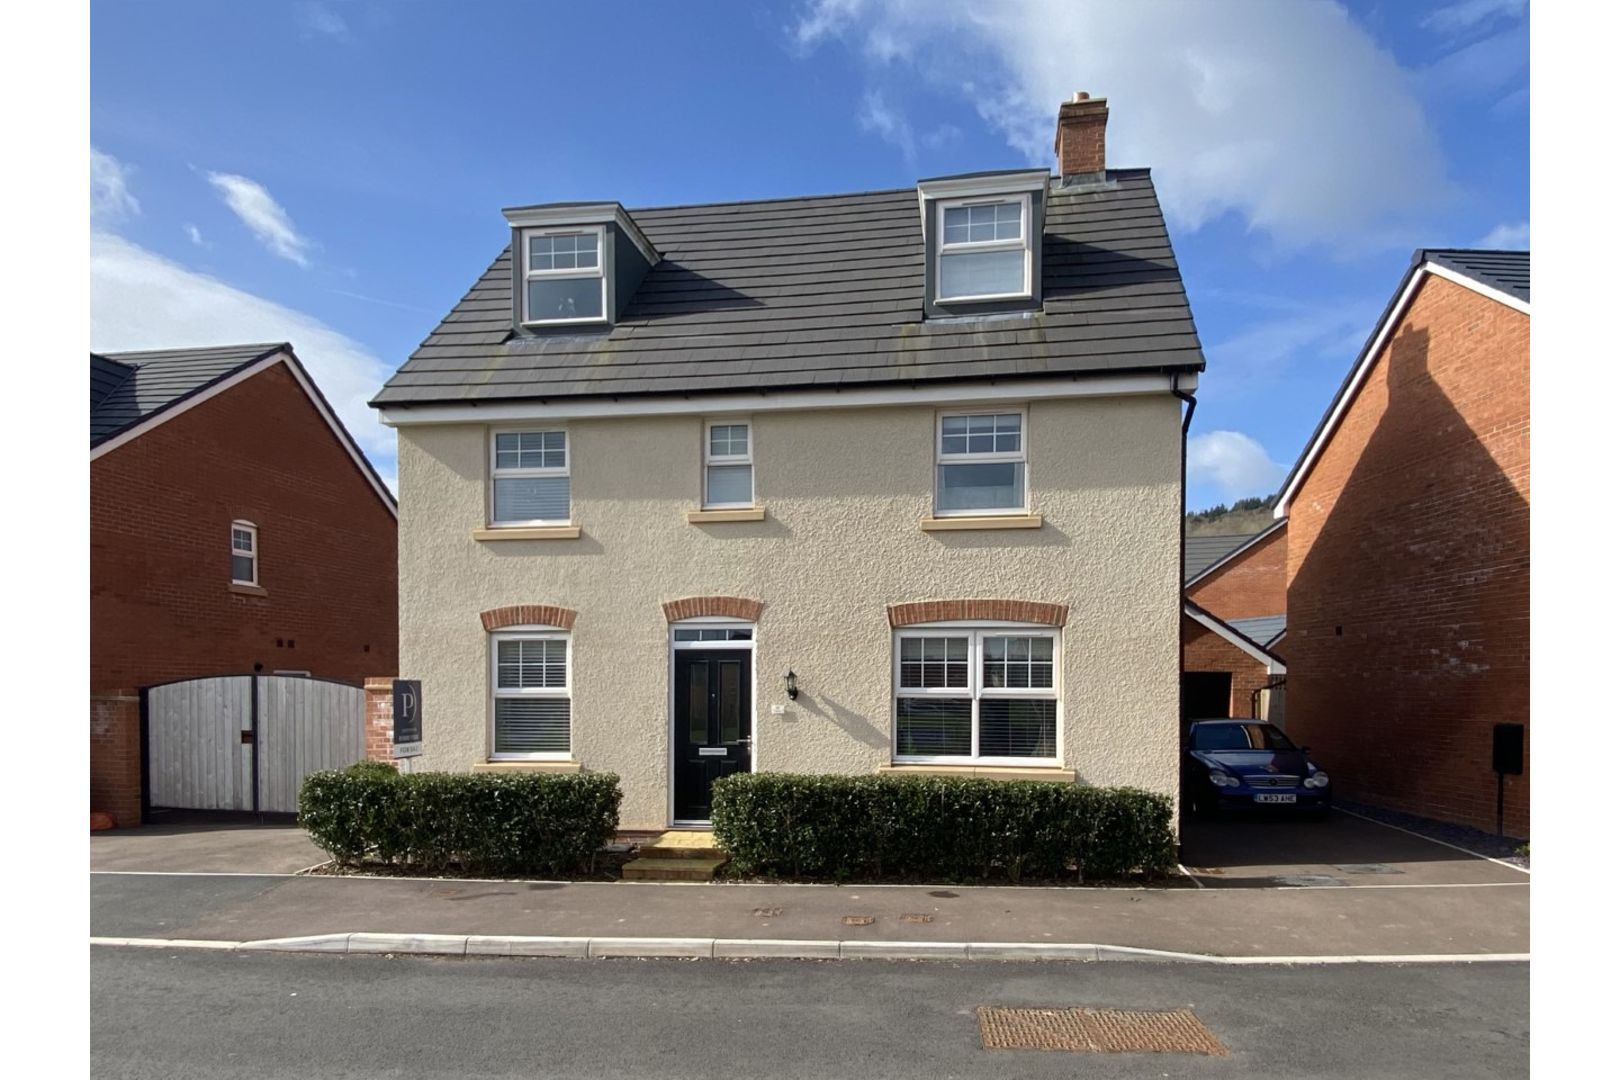 Property photo 1 of 15. Front